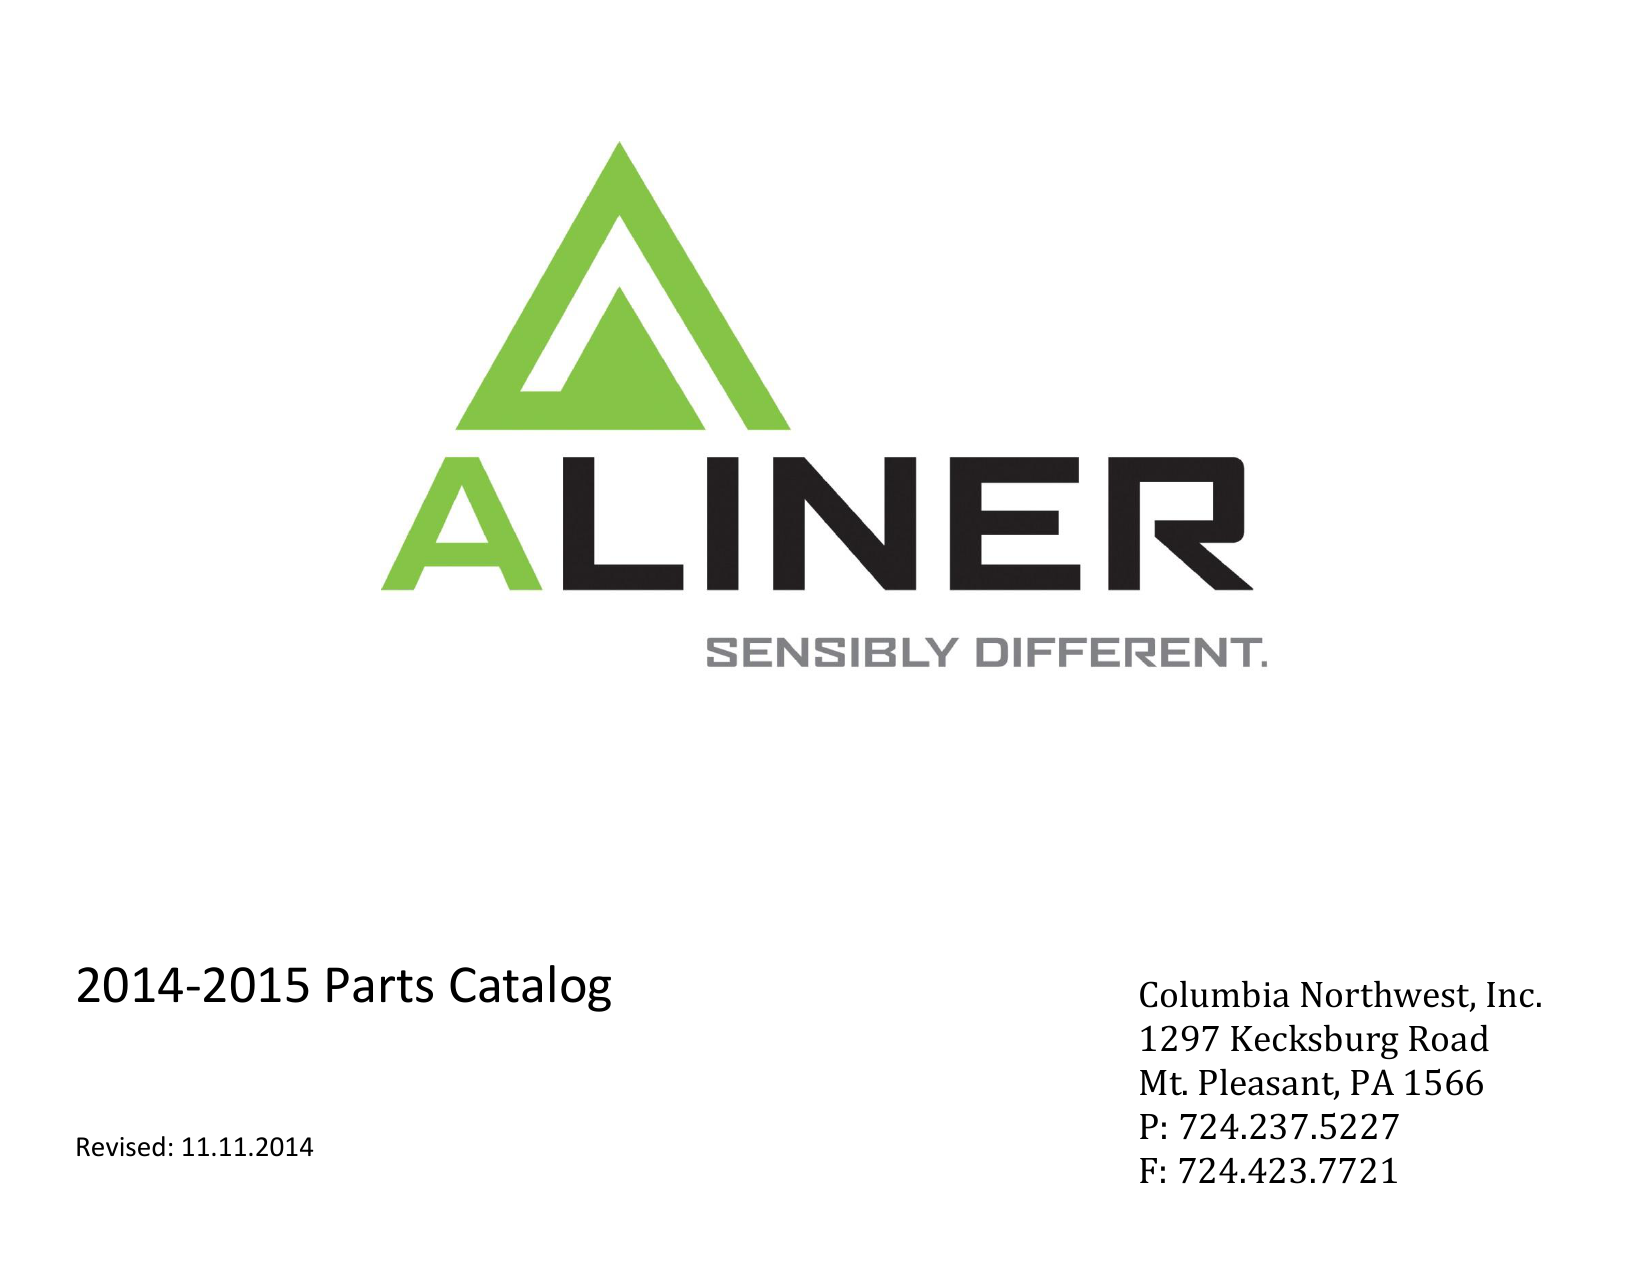 Superior Auto Parts >> Download our 2014-2015 Parts Catalog - Aliner